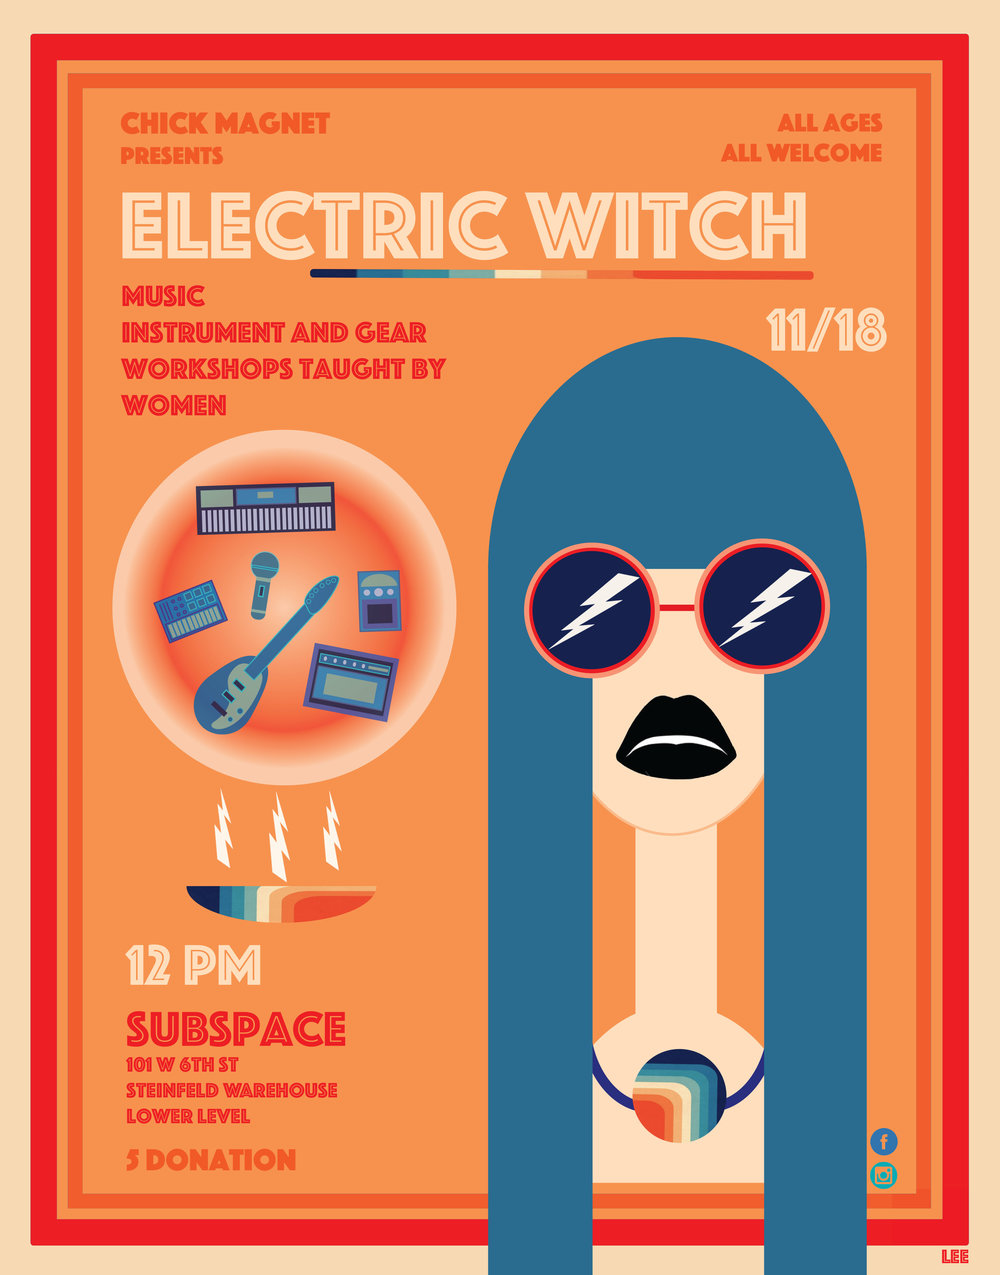 Electric Witch-FINAL POSTER(11x14).jpg